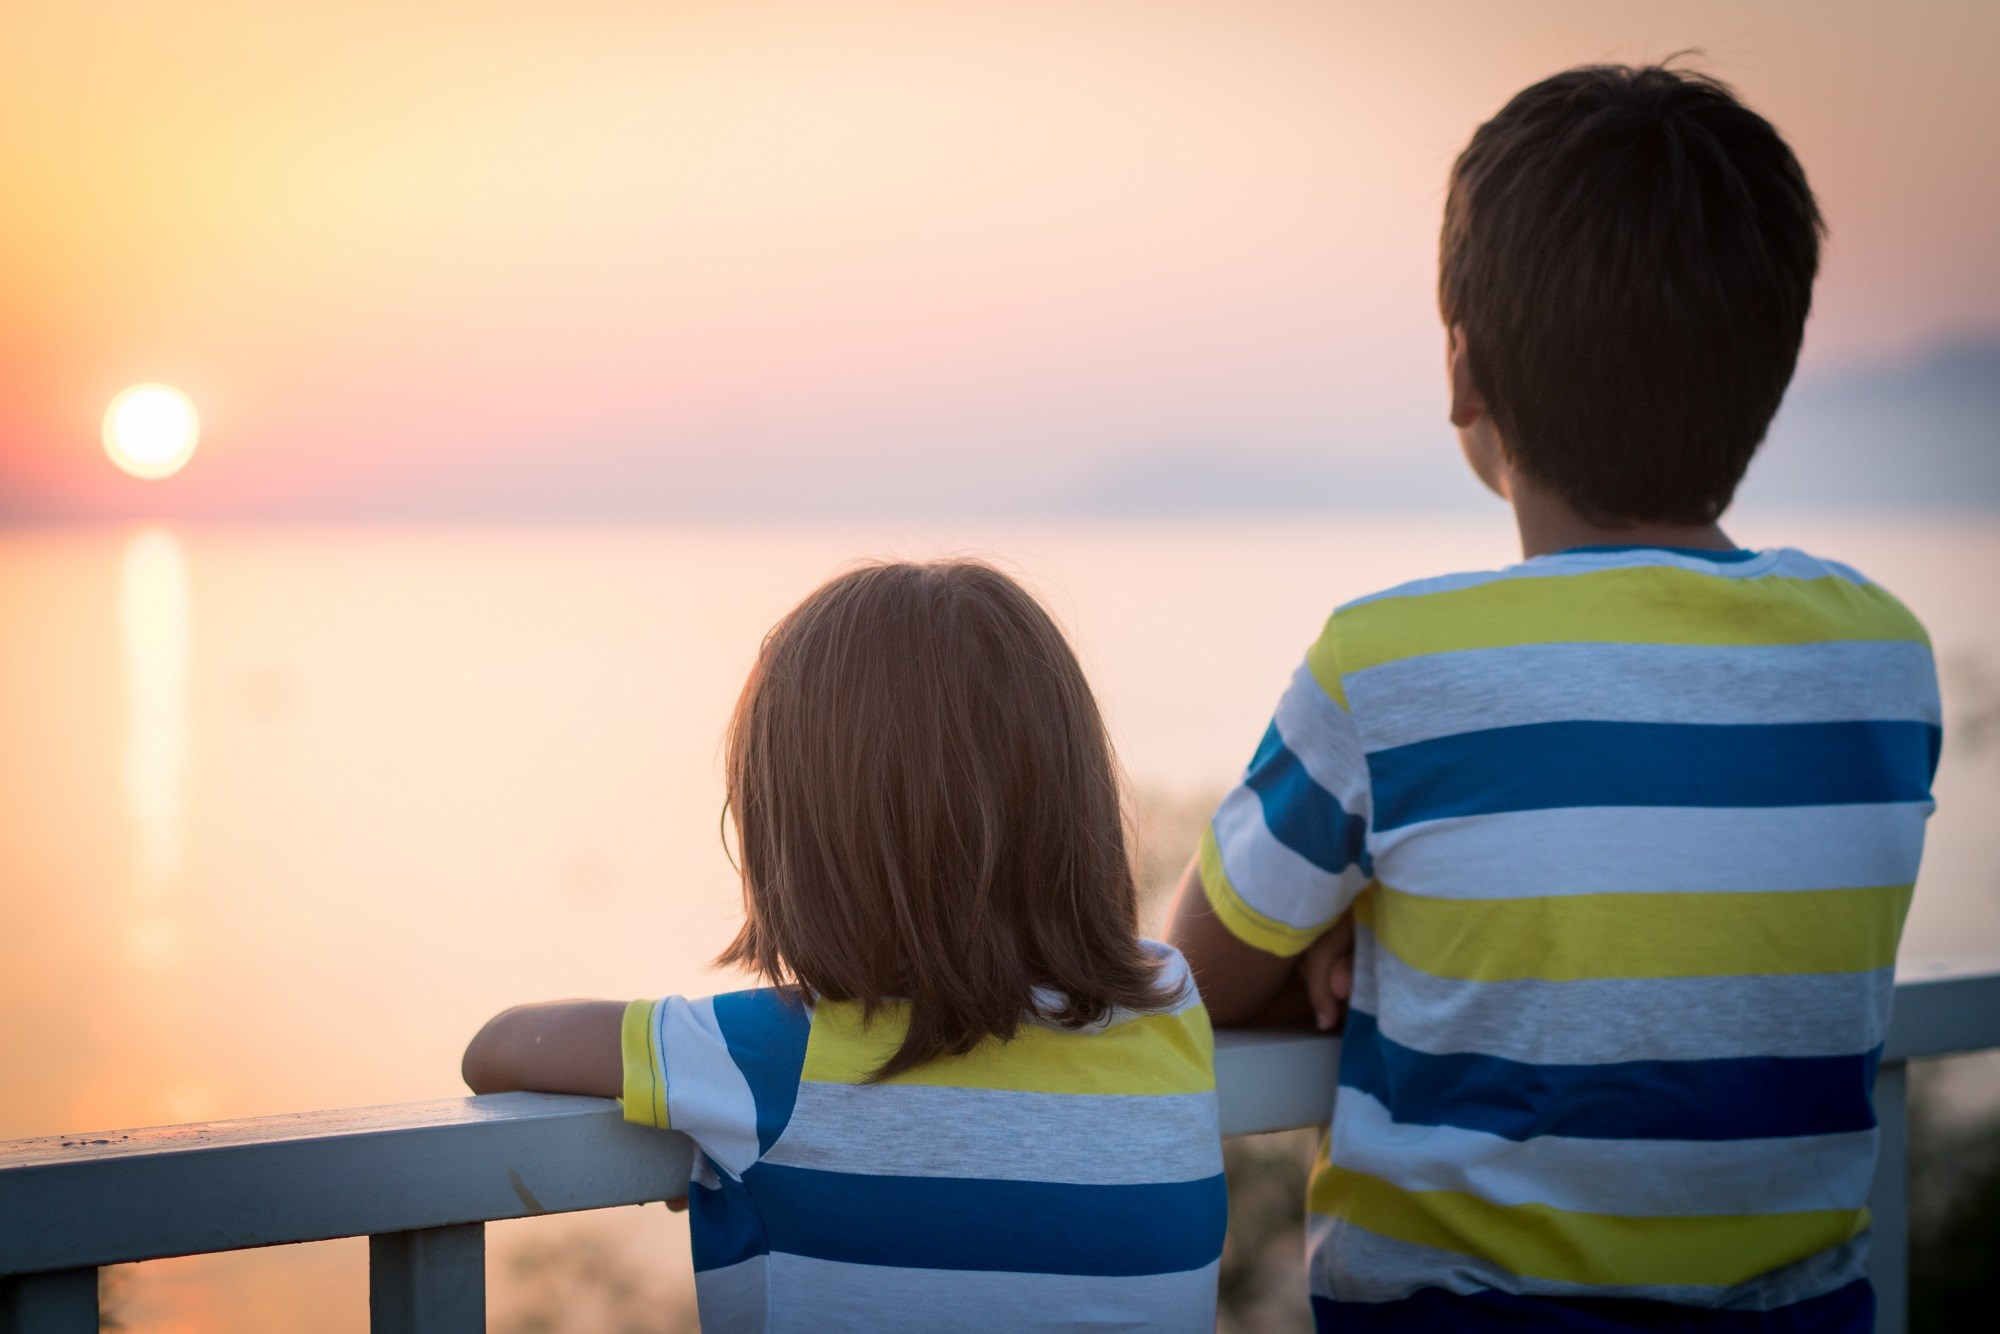 Later-born siblings of children with ASD or ADHD have an elevated risk of being diagnosed with the same or the other disorder.